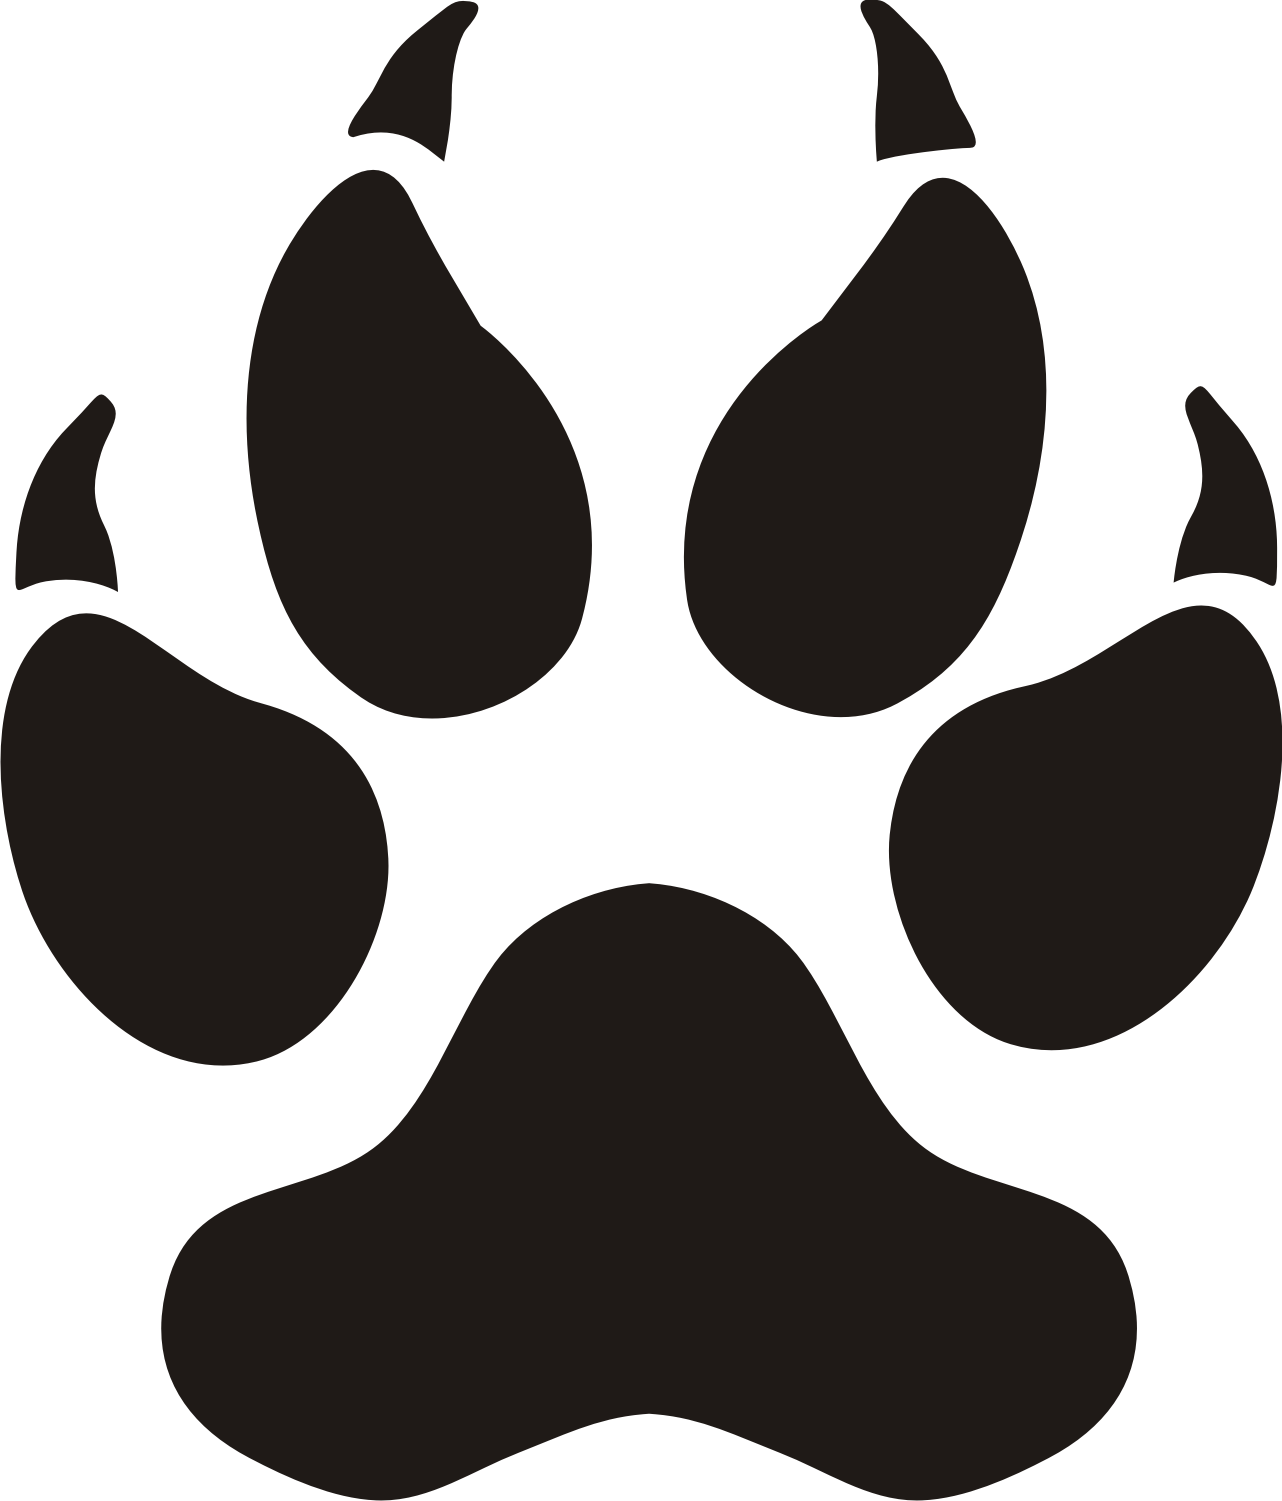 small panther paw print images clipart best baby z pinterest rh pinterest ca free panther clipart mascot free panther clip art mascots